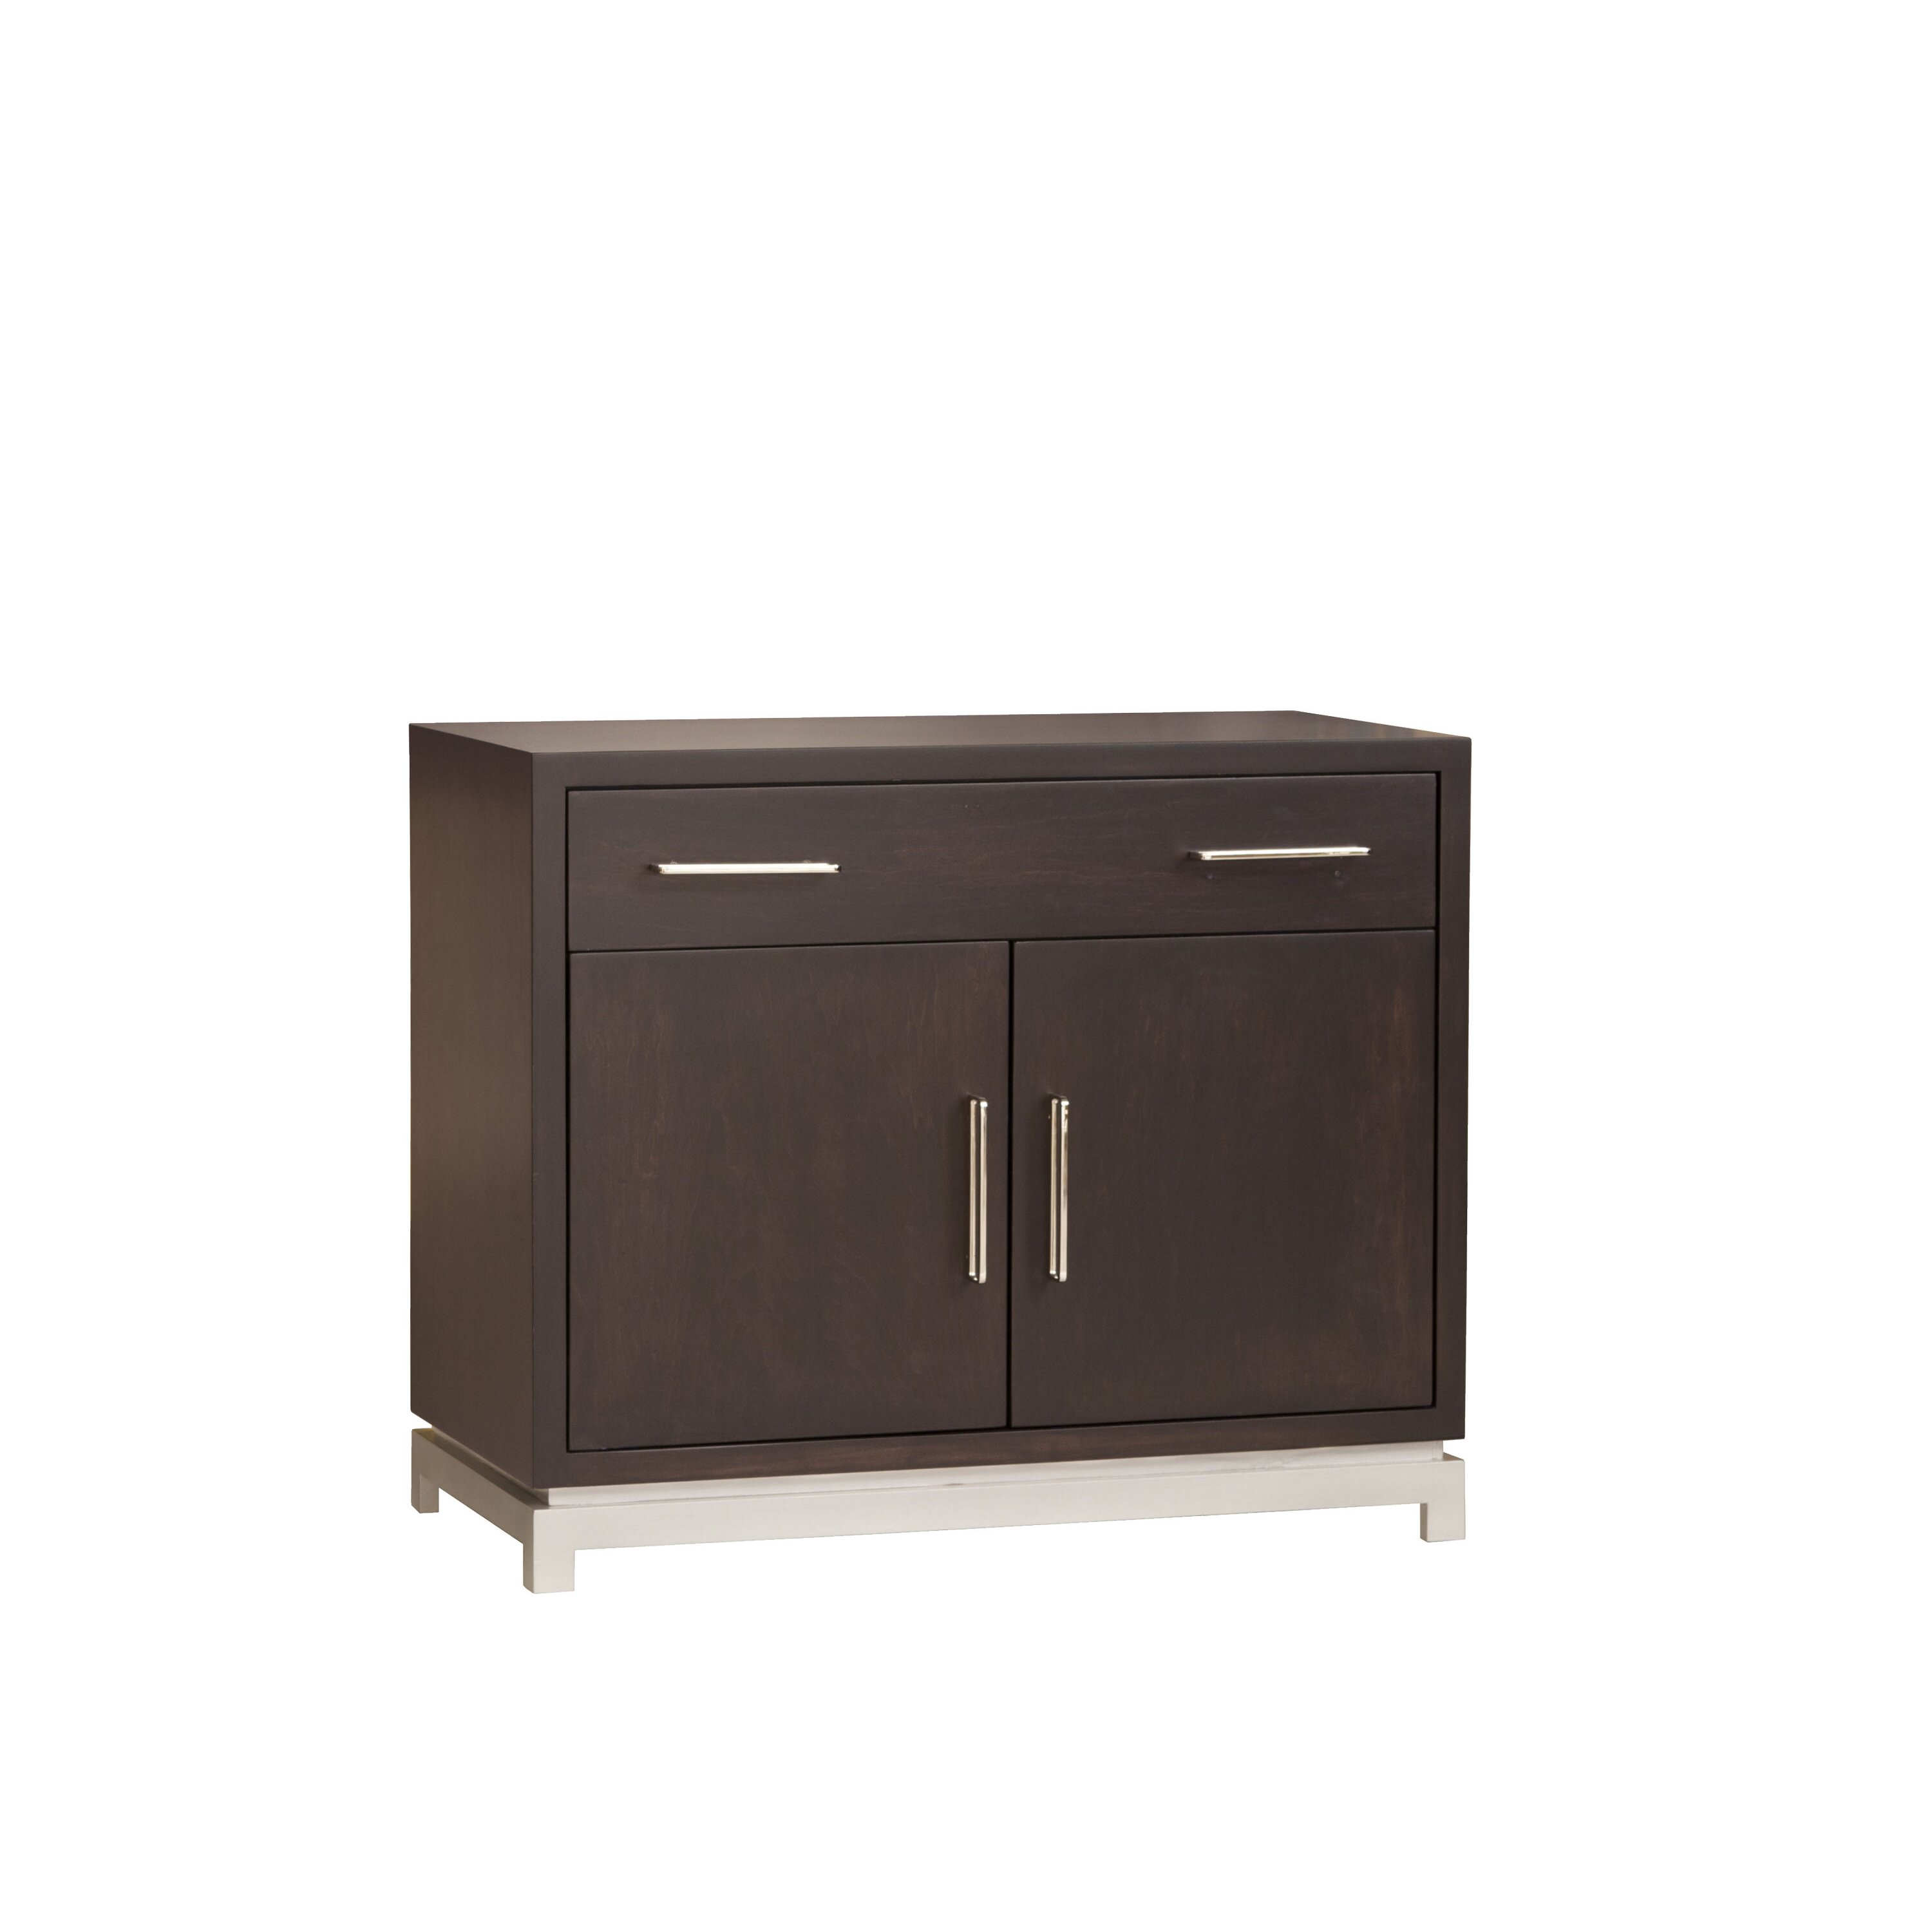 Urbangreen classic contemporary 1 drawer nightstand for Classic contemporary furniture